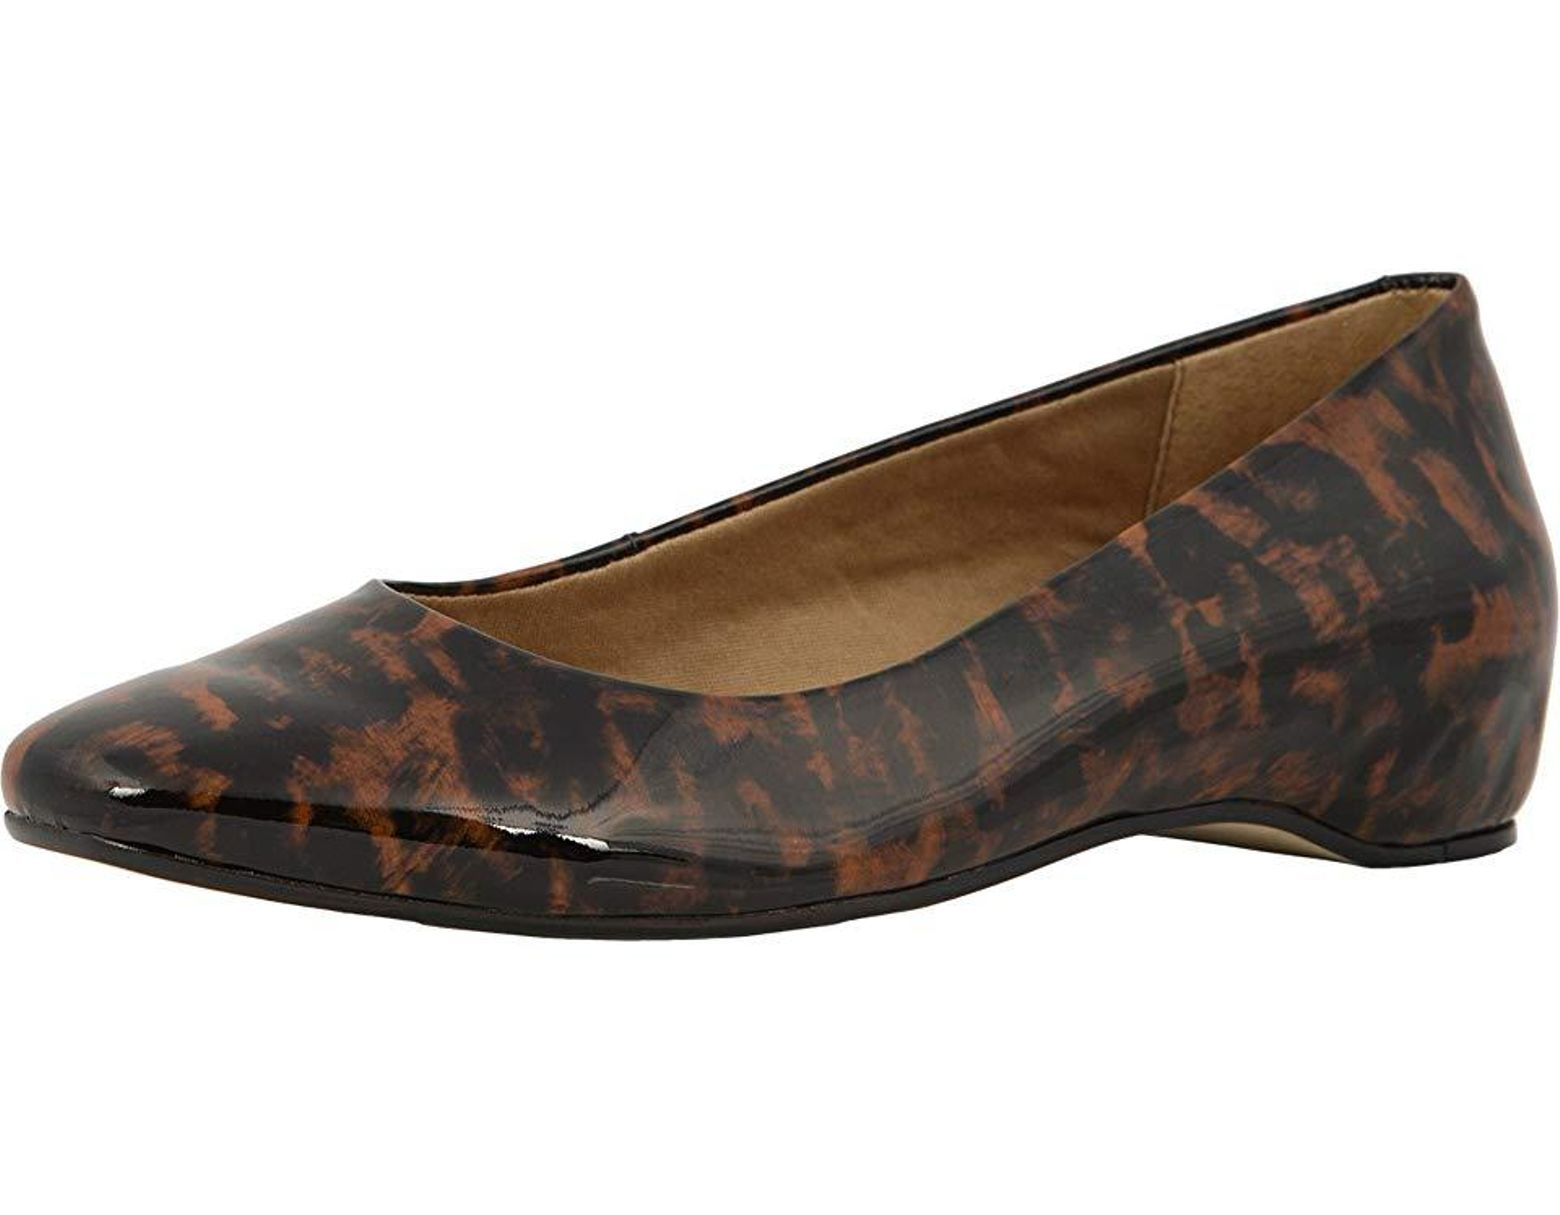 65b0abfcdceb Walking Cradles Pisces (leopard Patent) Flat Shoes in Brown - Save 34% -  Lyst